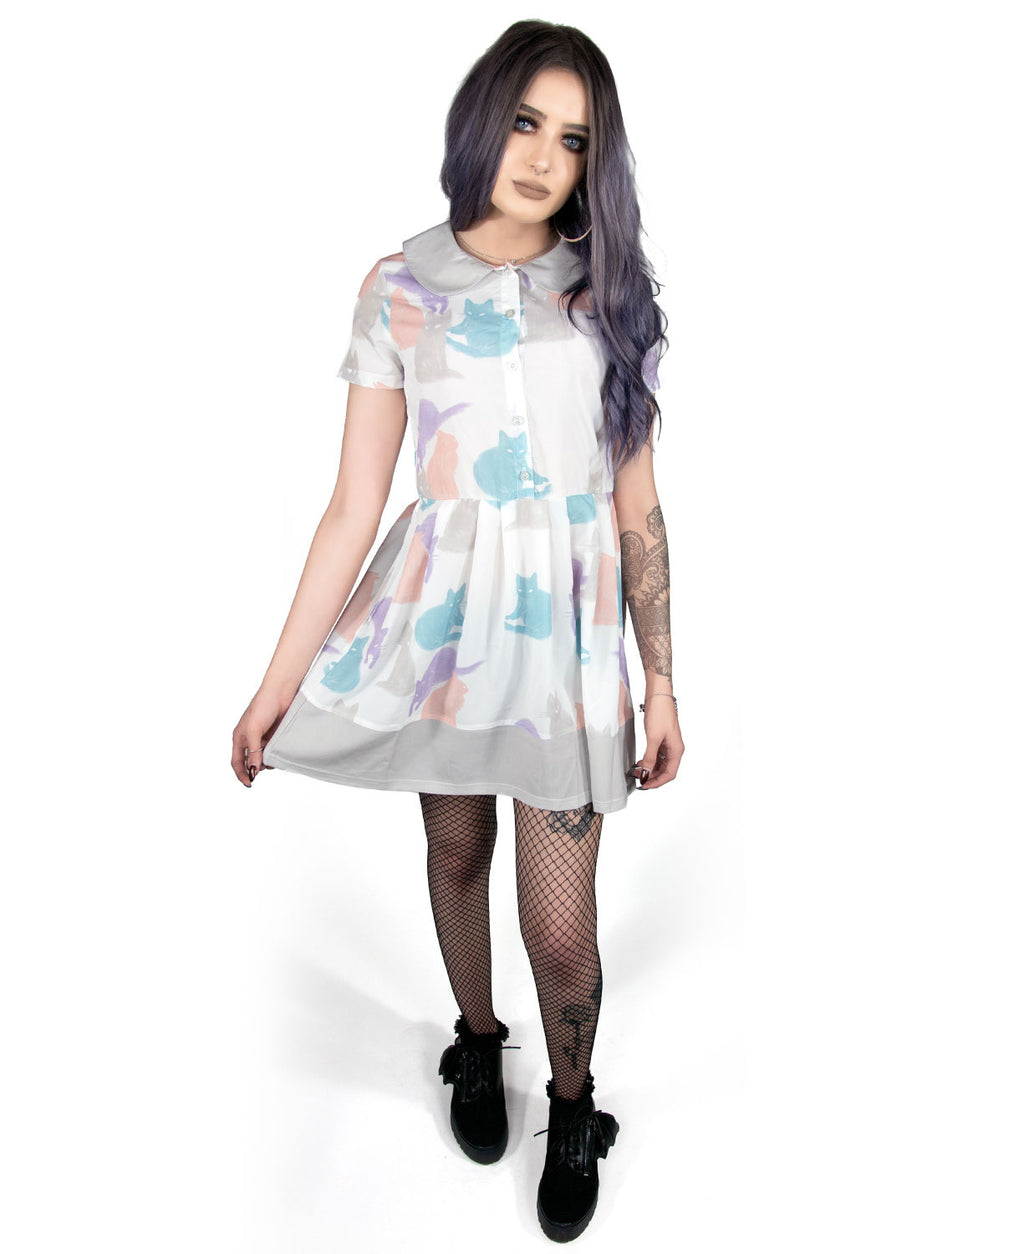 Fearless Illustration Cat Lady Kawaii Mini Dress | Rebel Rebel Bruges